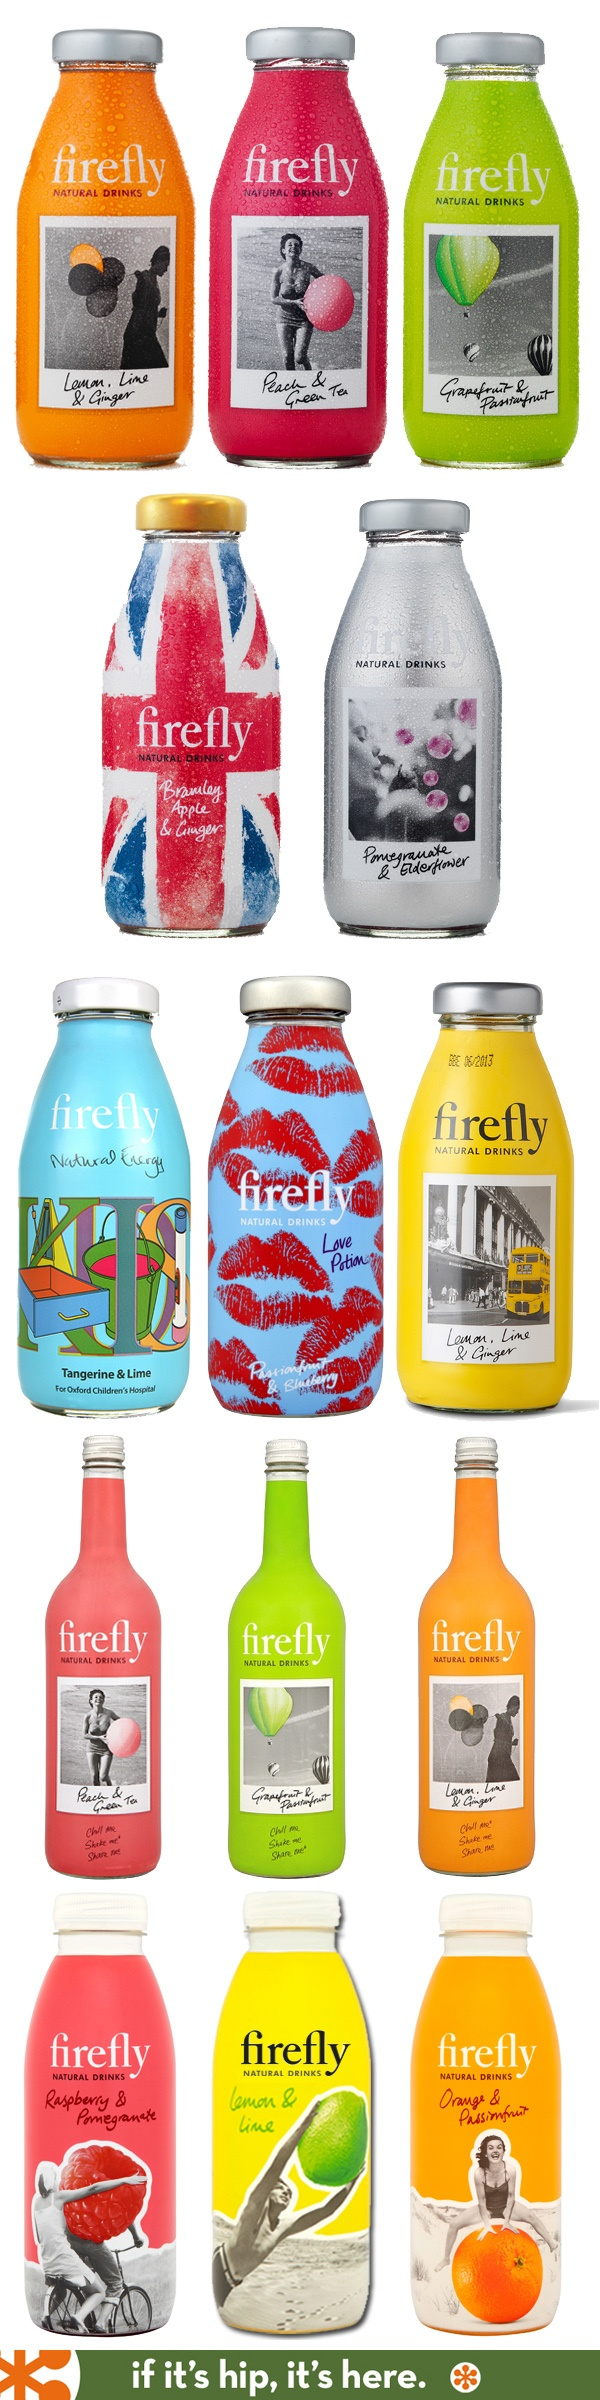 Firefly Tonics bottles, Including the Limited Editions.  Like the interesting designs on each